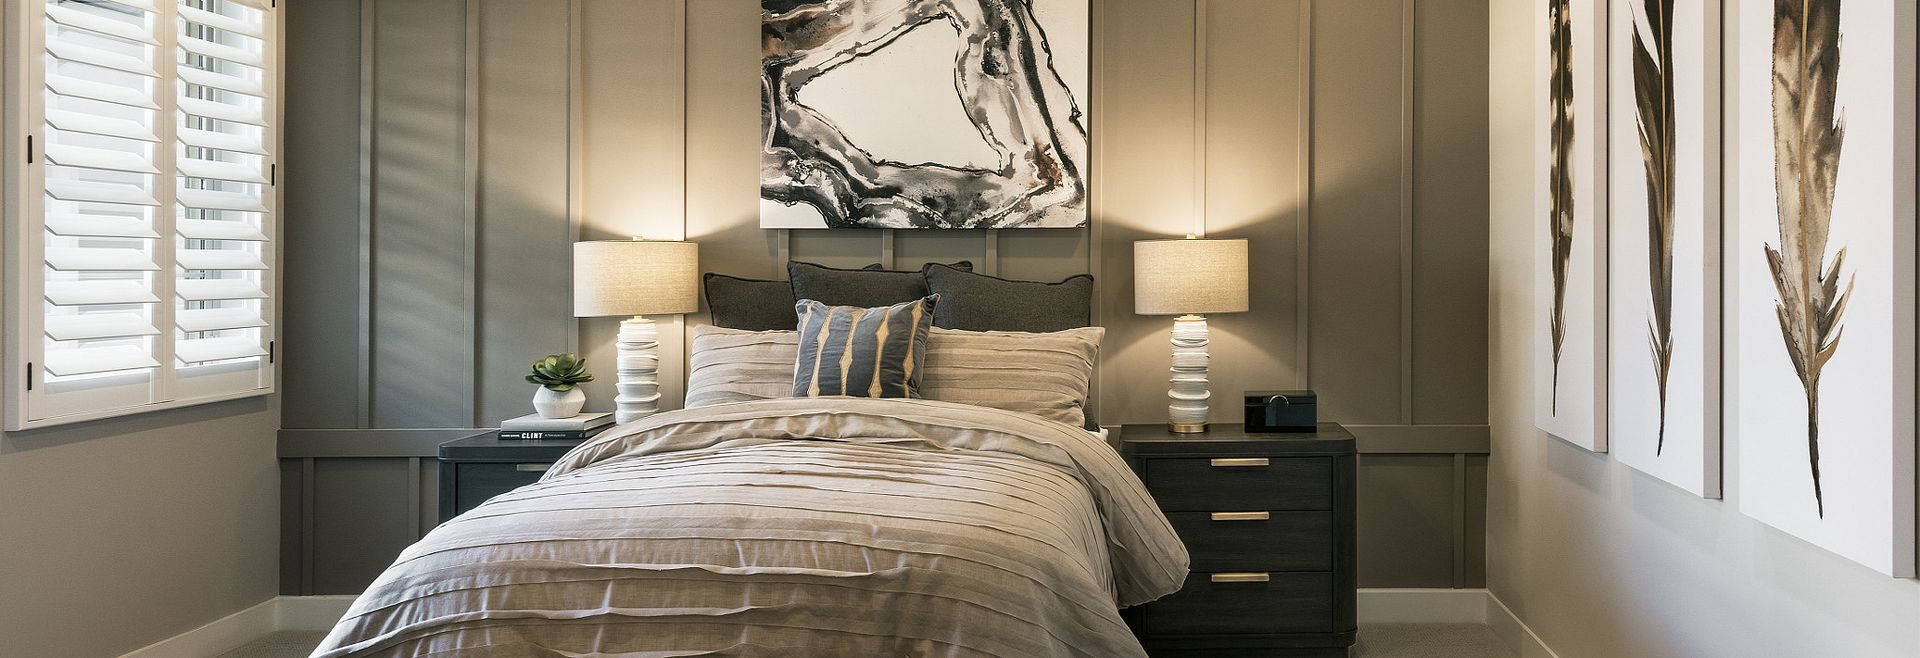 Guest bedroom in Flourish plan at Evolve at Cantilena